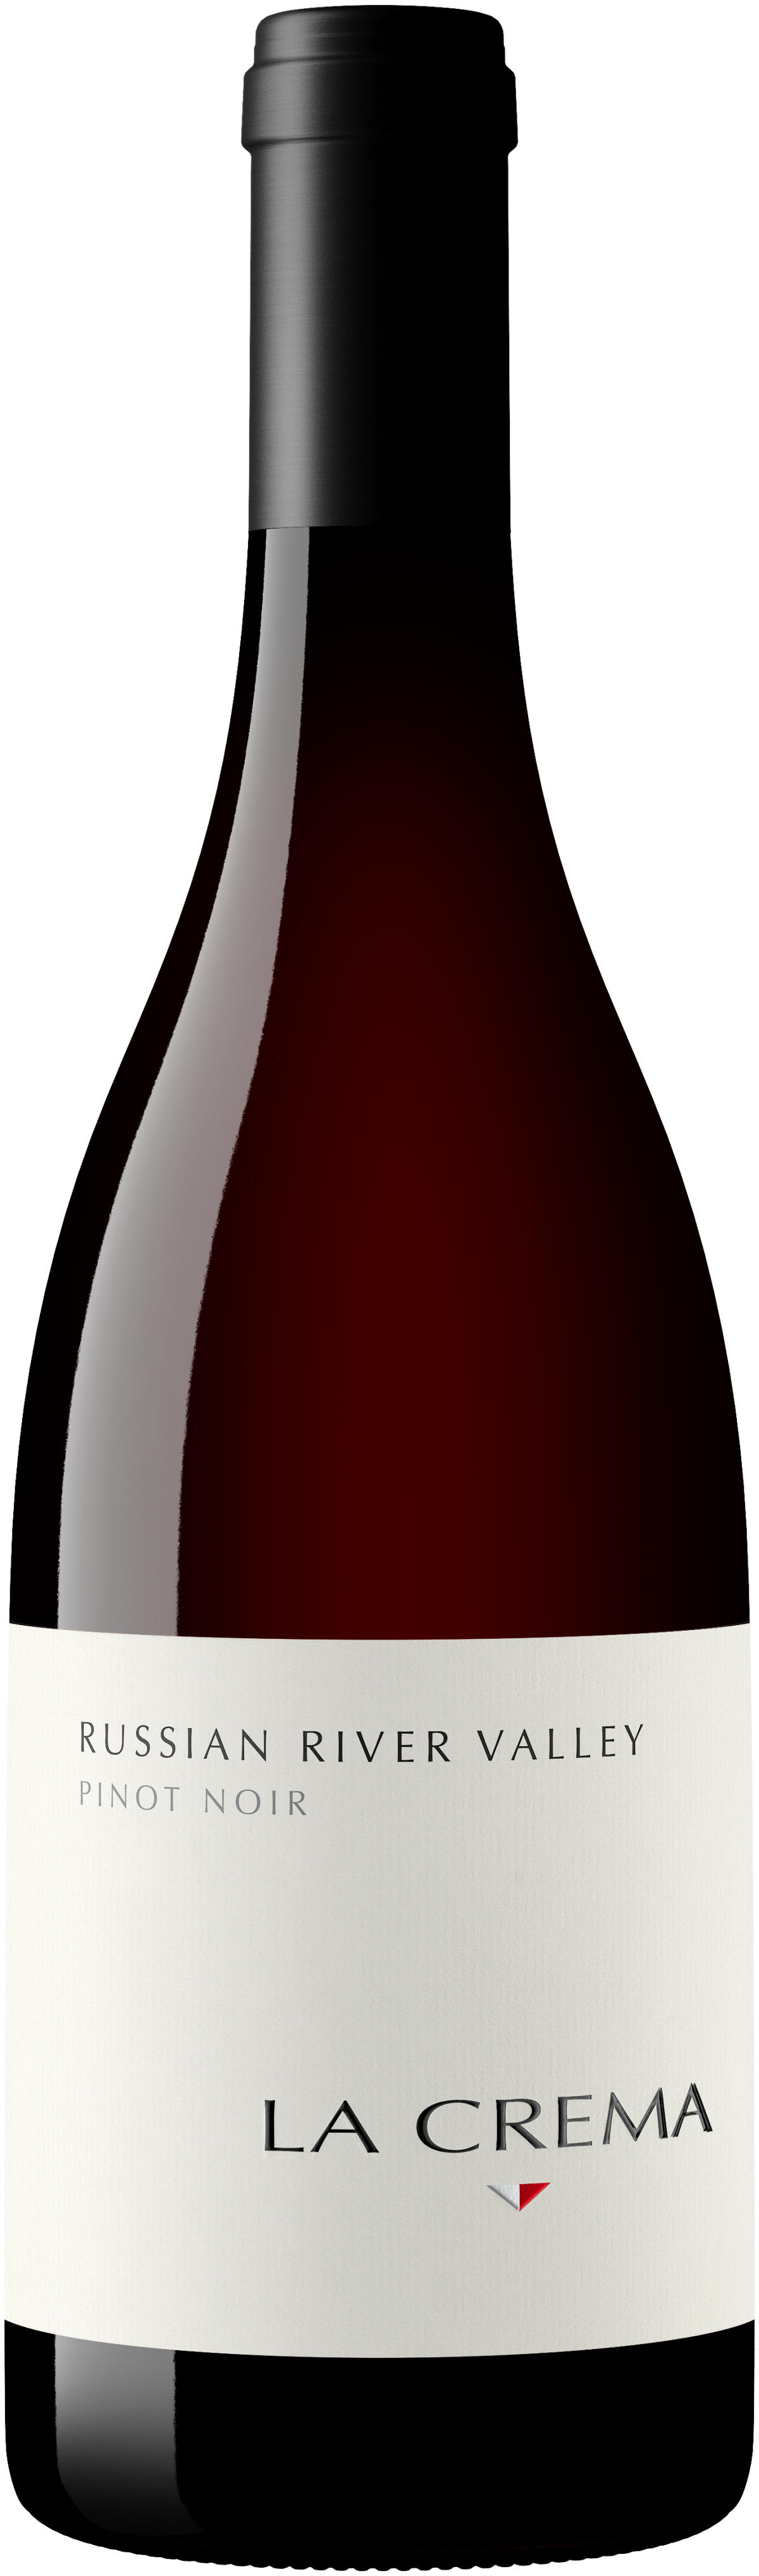 LaCrema-PinotNoir-RussianRiverValley-NV